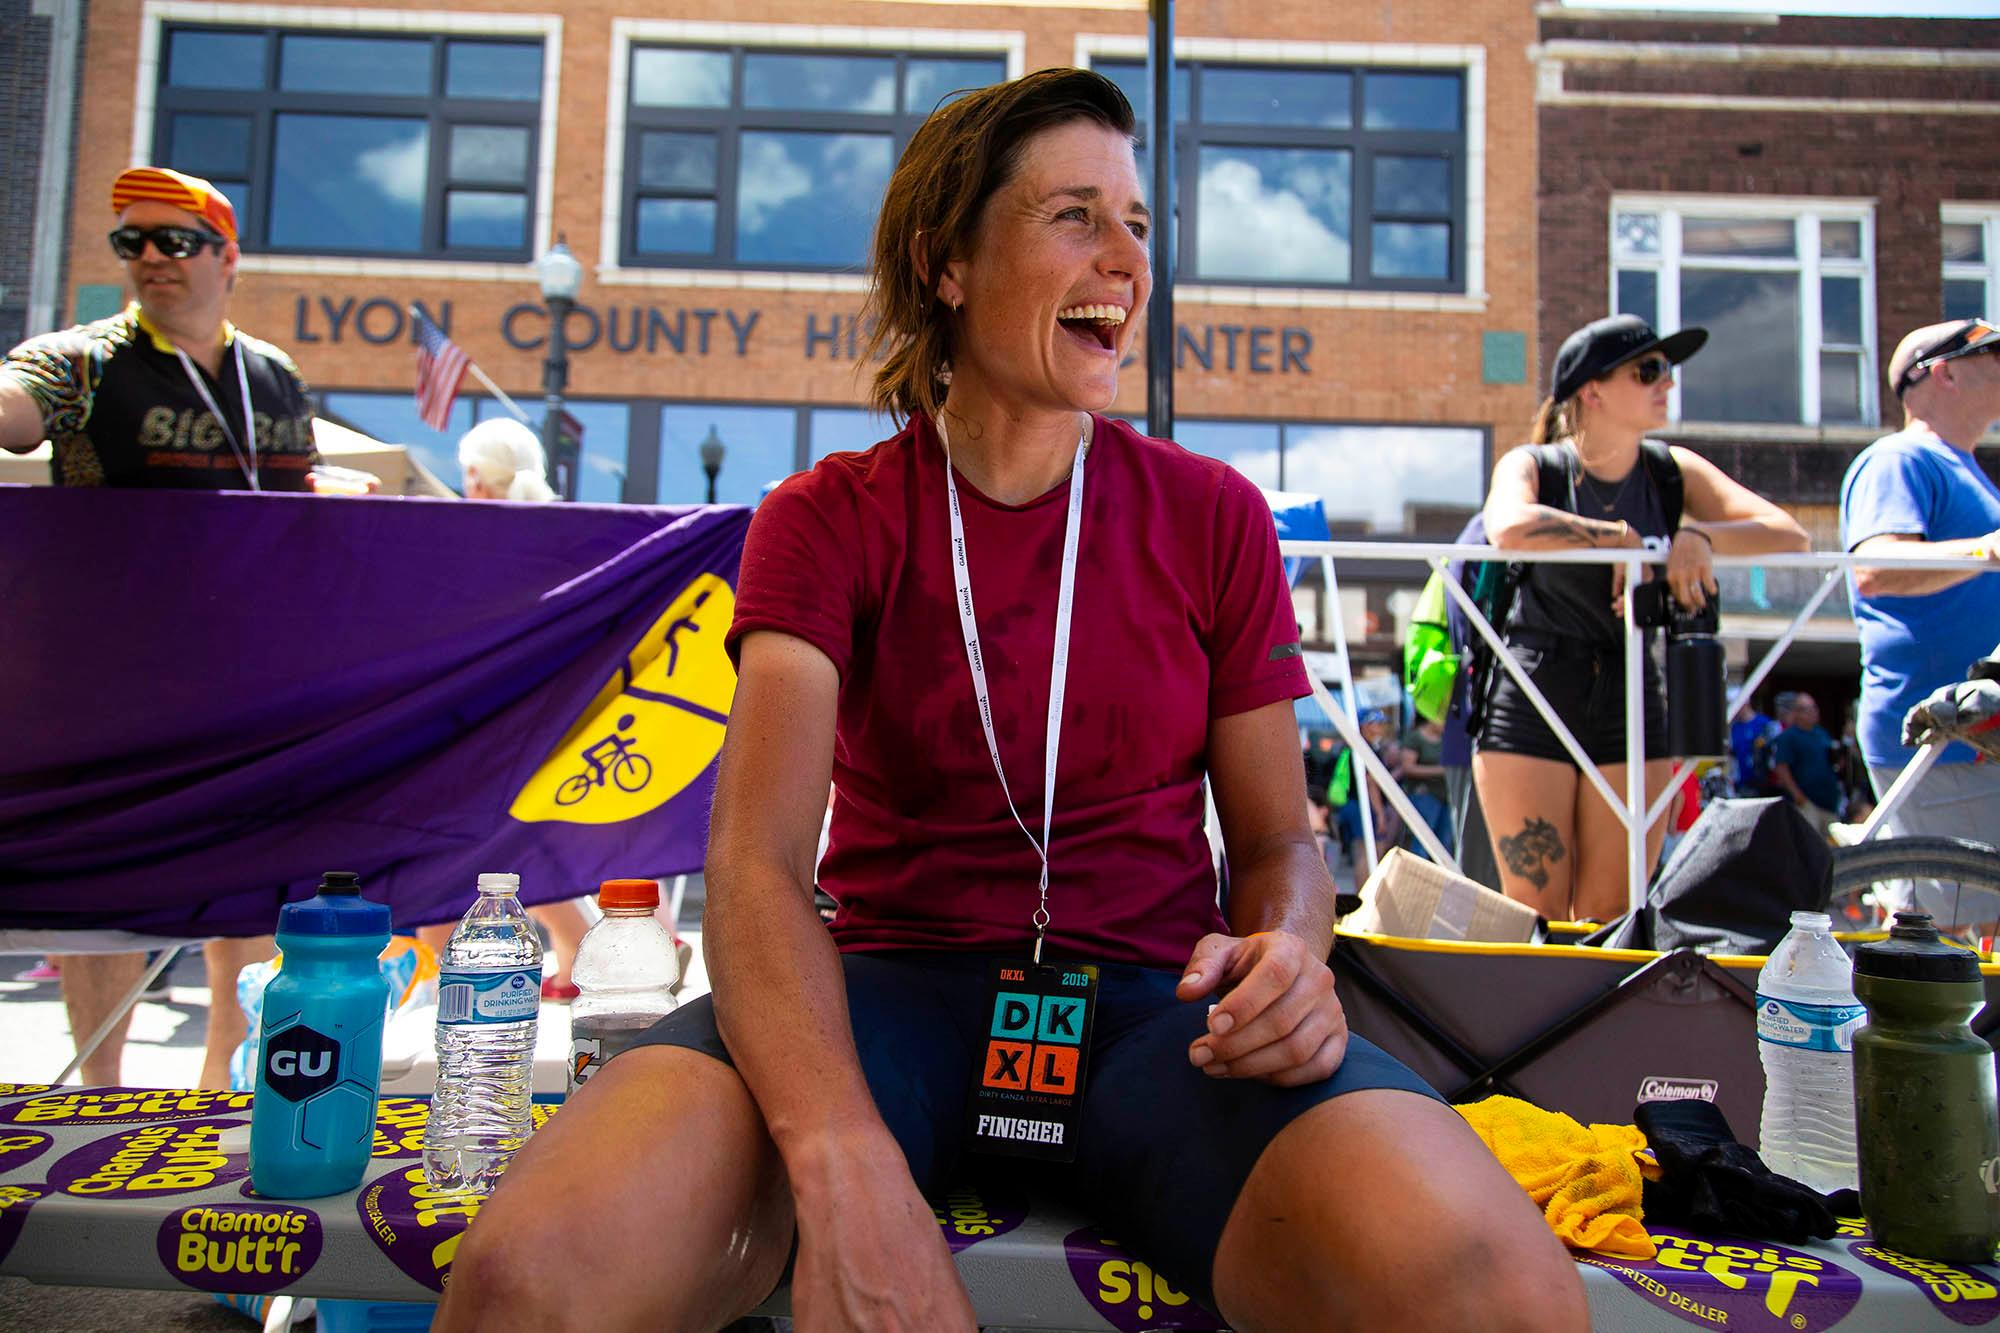 Lael Wilcox was the first female finisher and placed sixth overall in the DKXL with a time of 23:51:37. (Rugile Kaladyte)